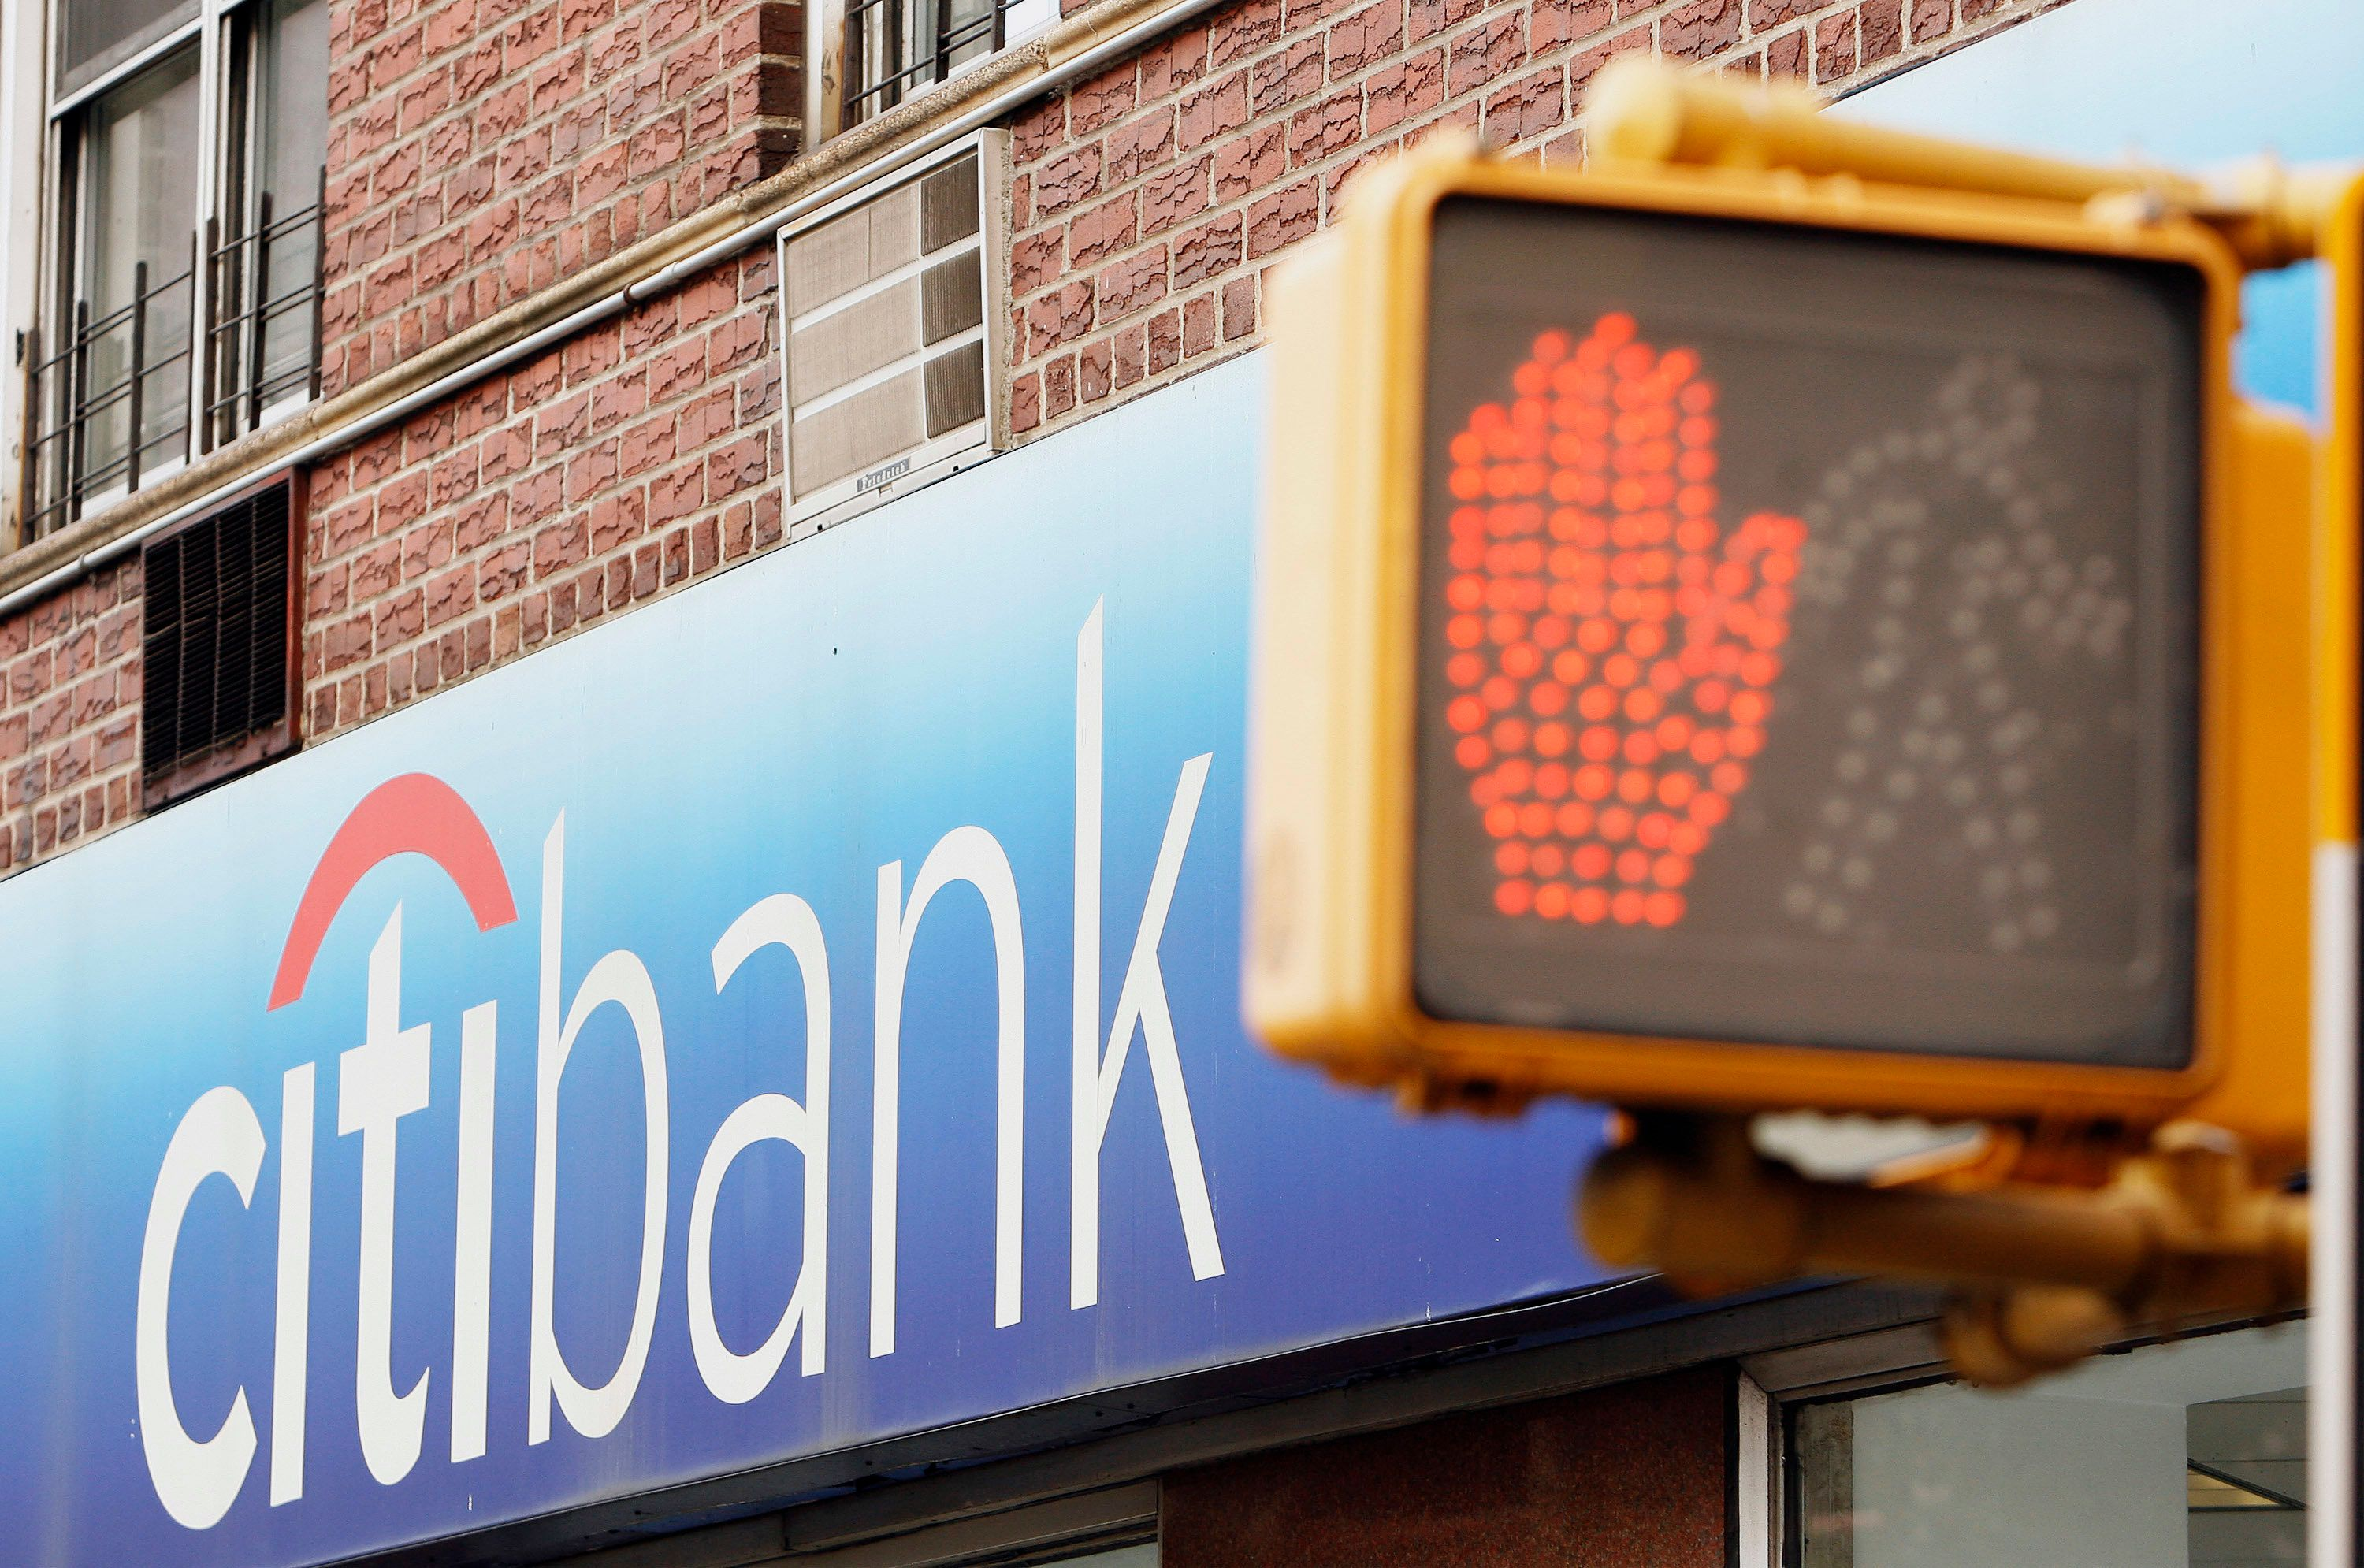 Pedestrian signals can be seen outside of a Citibank branch in New York, October 6, 2008. Citigroup said it is suing Wachovia and Wells Fargo and is seeking more than $60 billion in damages over Wells Fargo's competing bid for Wachovia. REUTERS/Lucas Jackson (UNITED STATES)